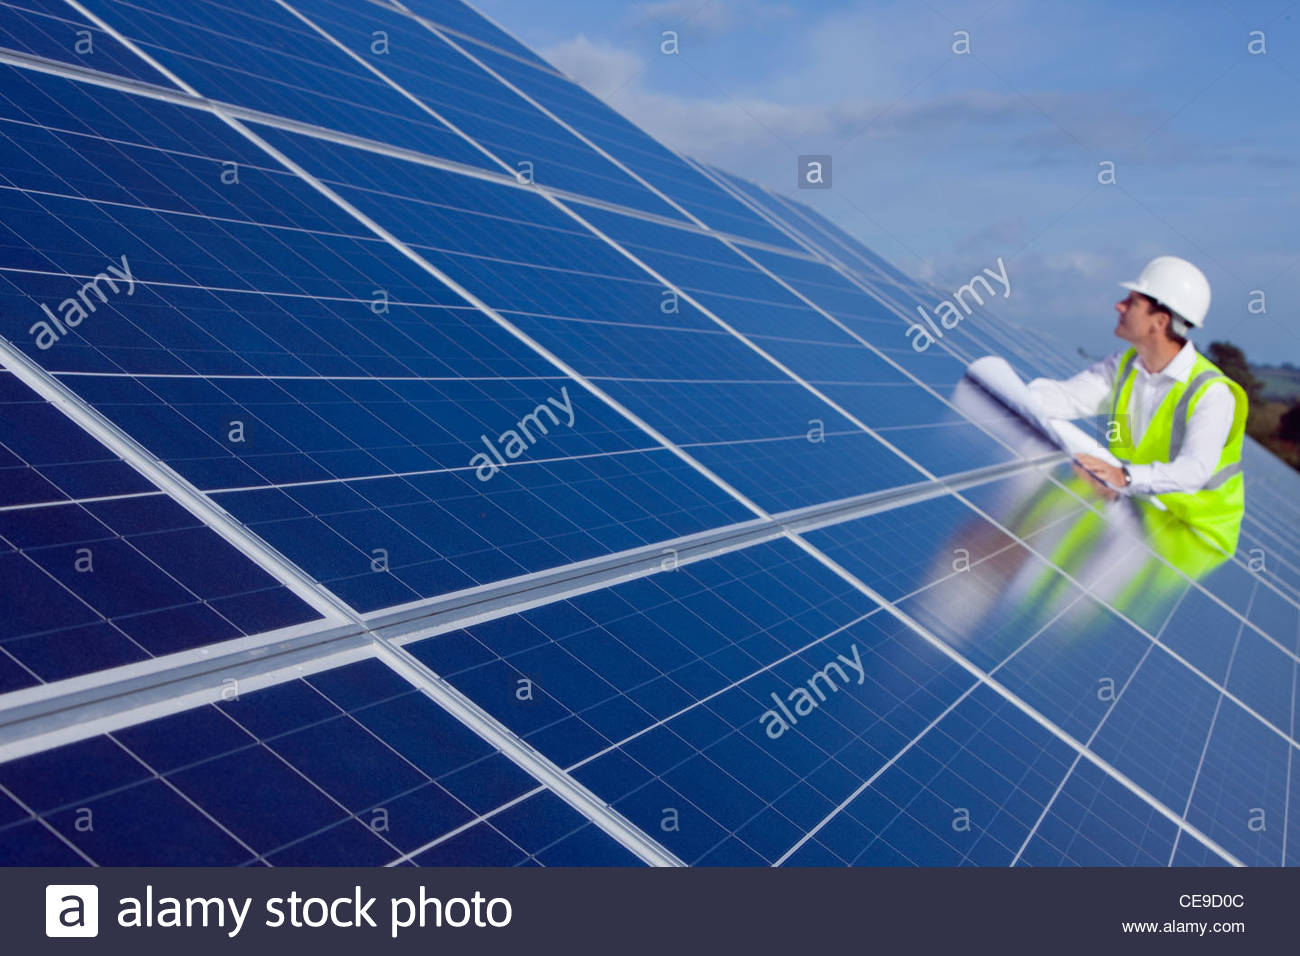 Engineer with blueprint inspecting solar panels stock for Solar panel blueprint